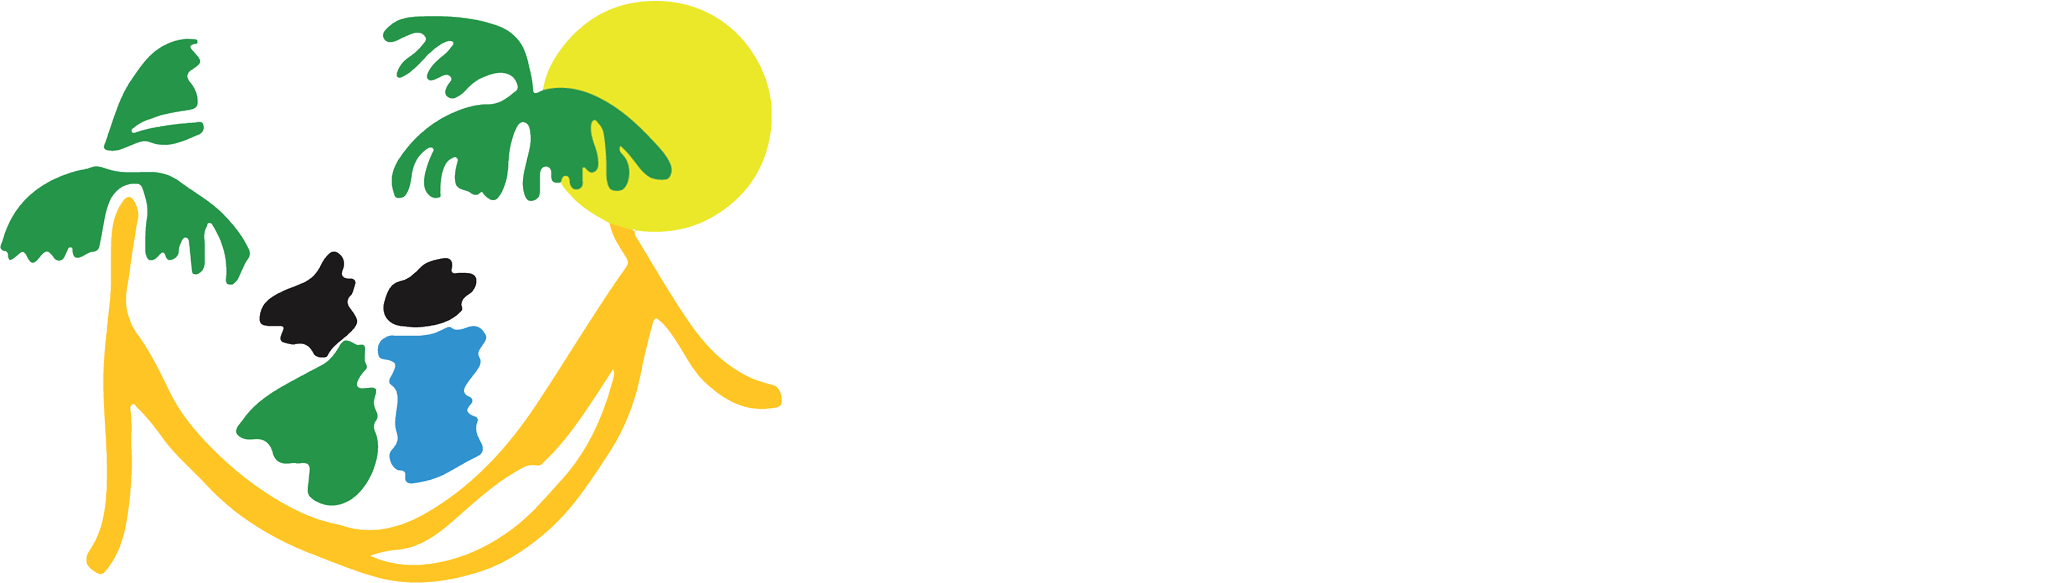 Filitheyo Island Resort – Official website Logo